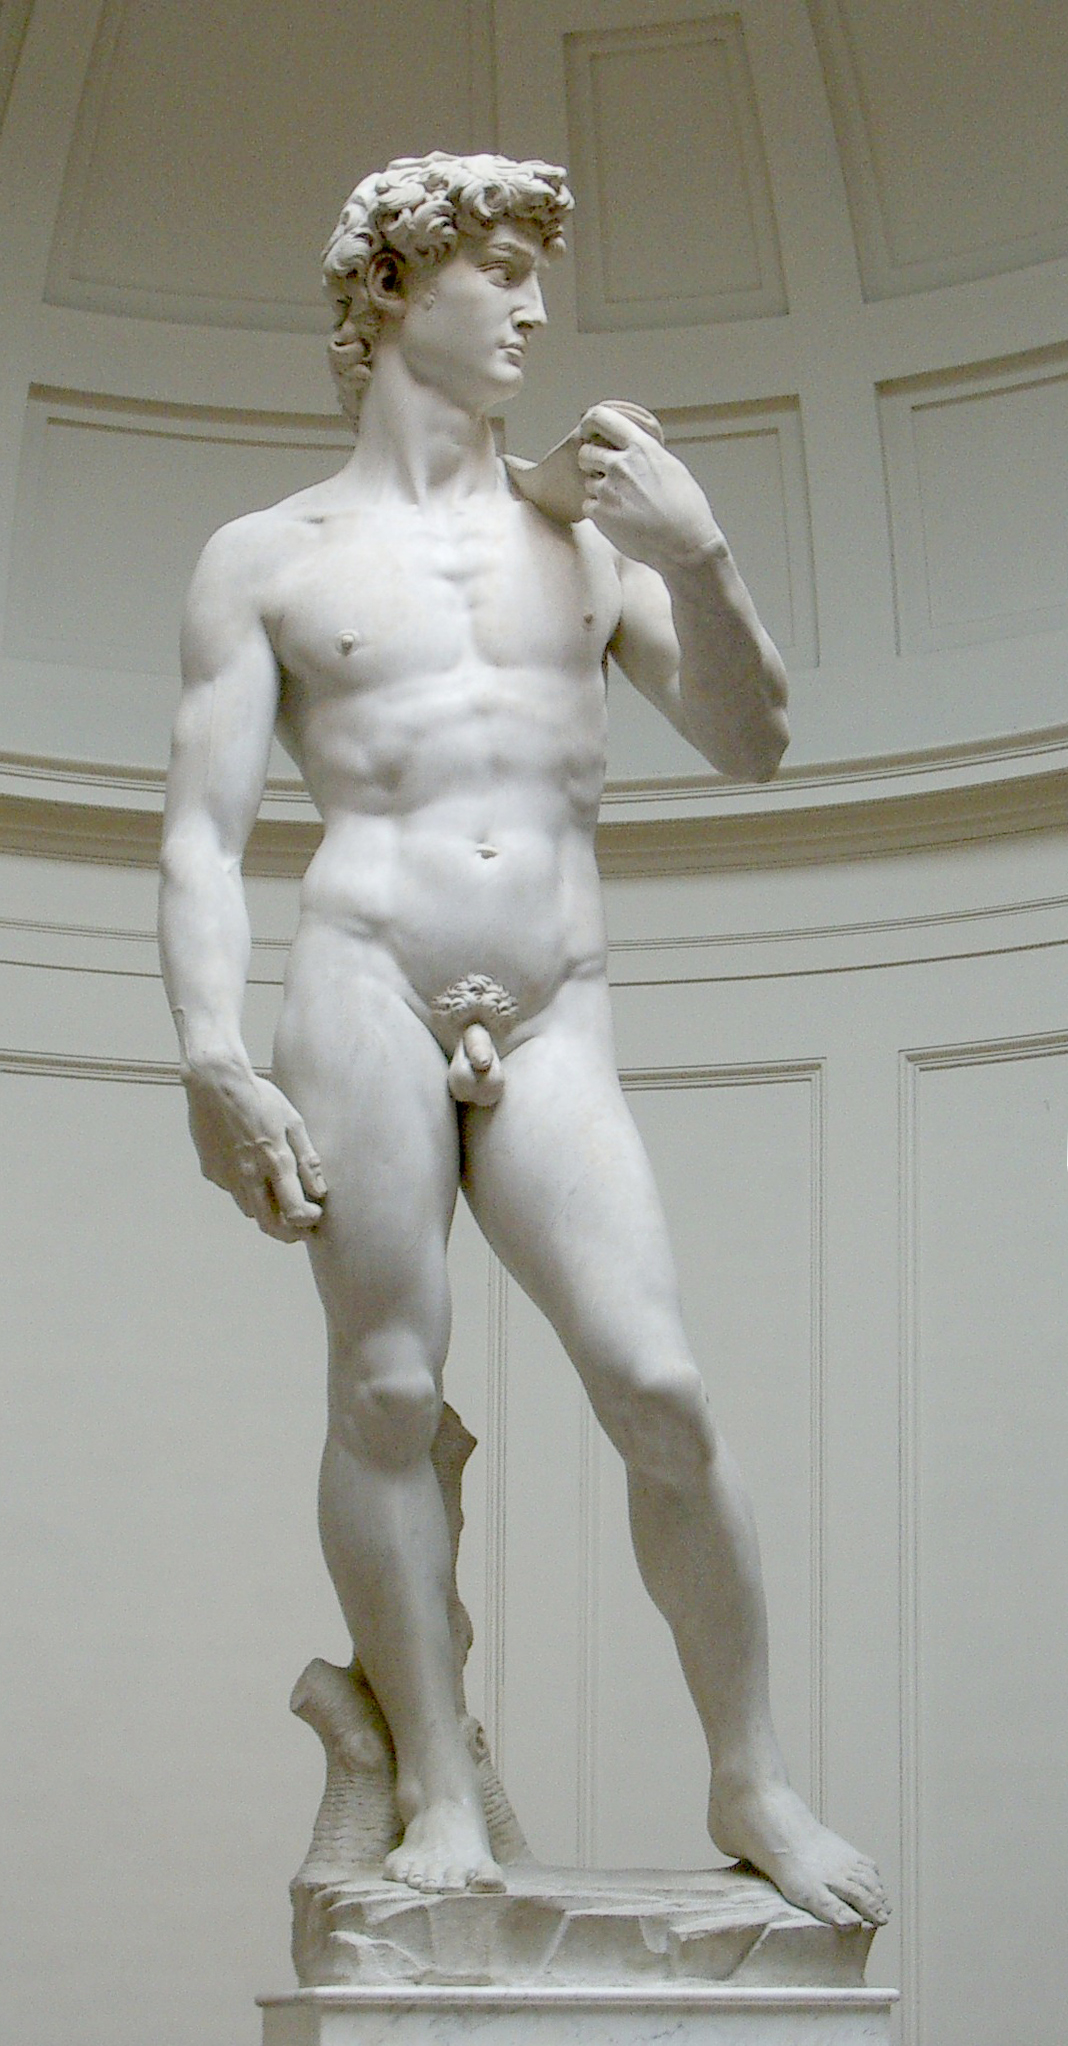 Sculpture of David, by Michelangelo